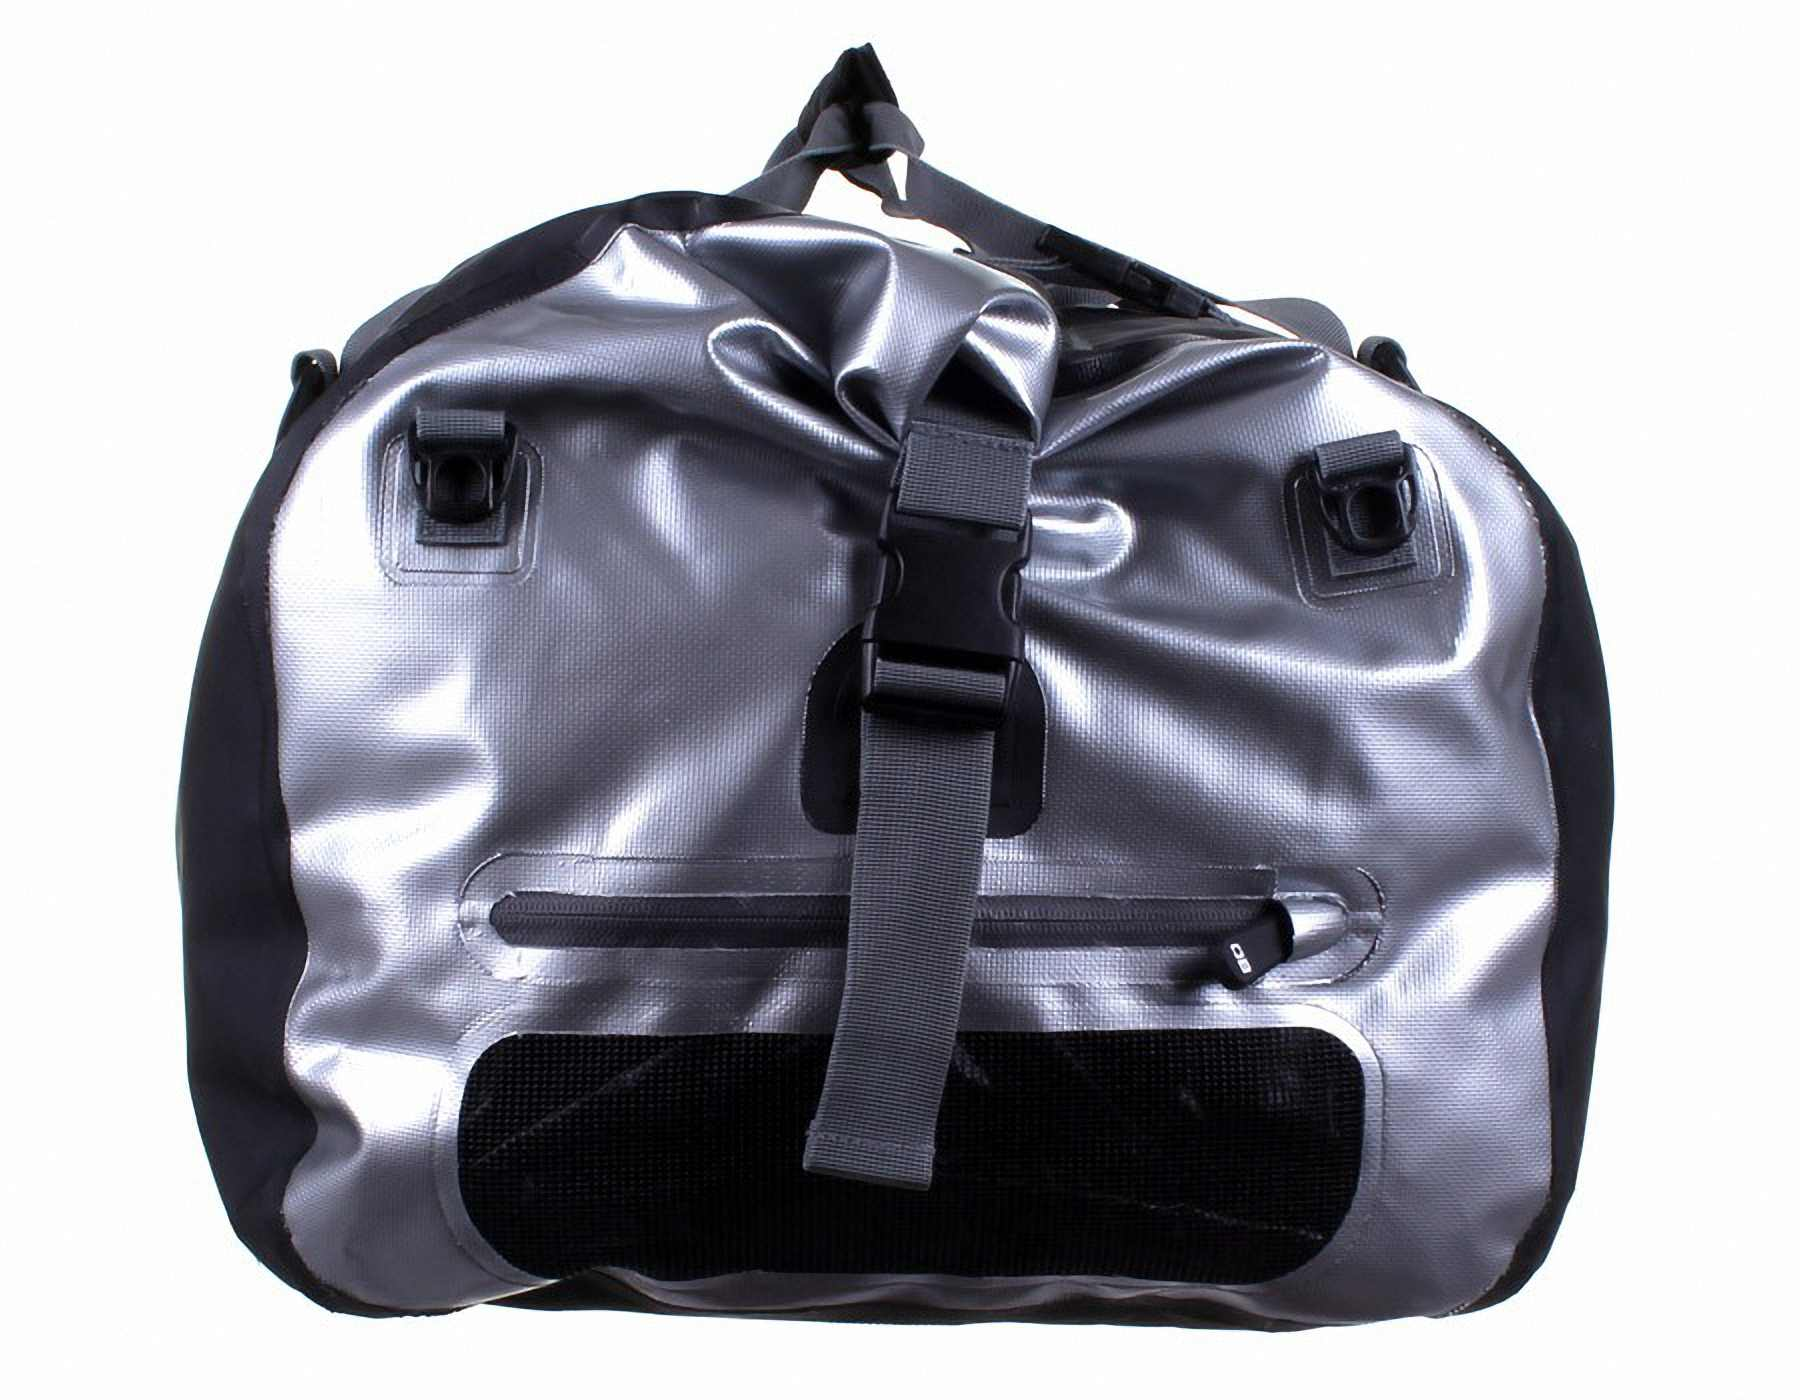 Водонепроницаемая сумка OverBoard OB1155BLK - Pro-Sports Waterproof Duffel Bag - 90 литров. Фото 3